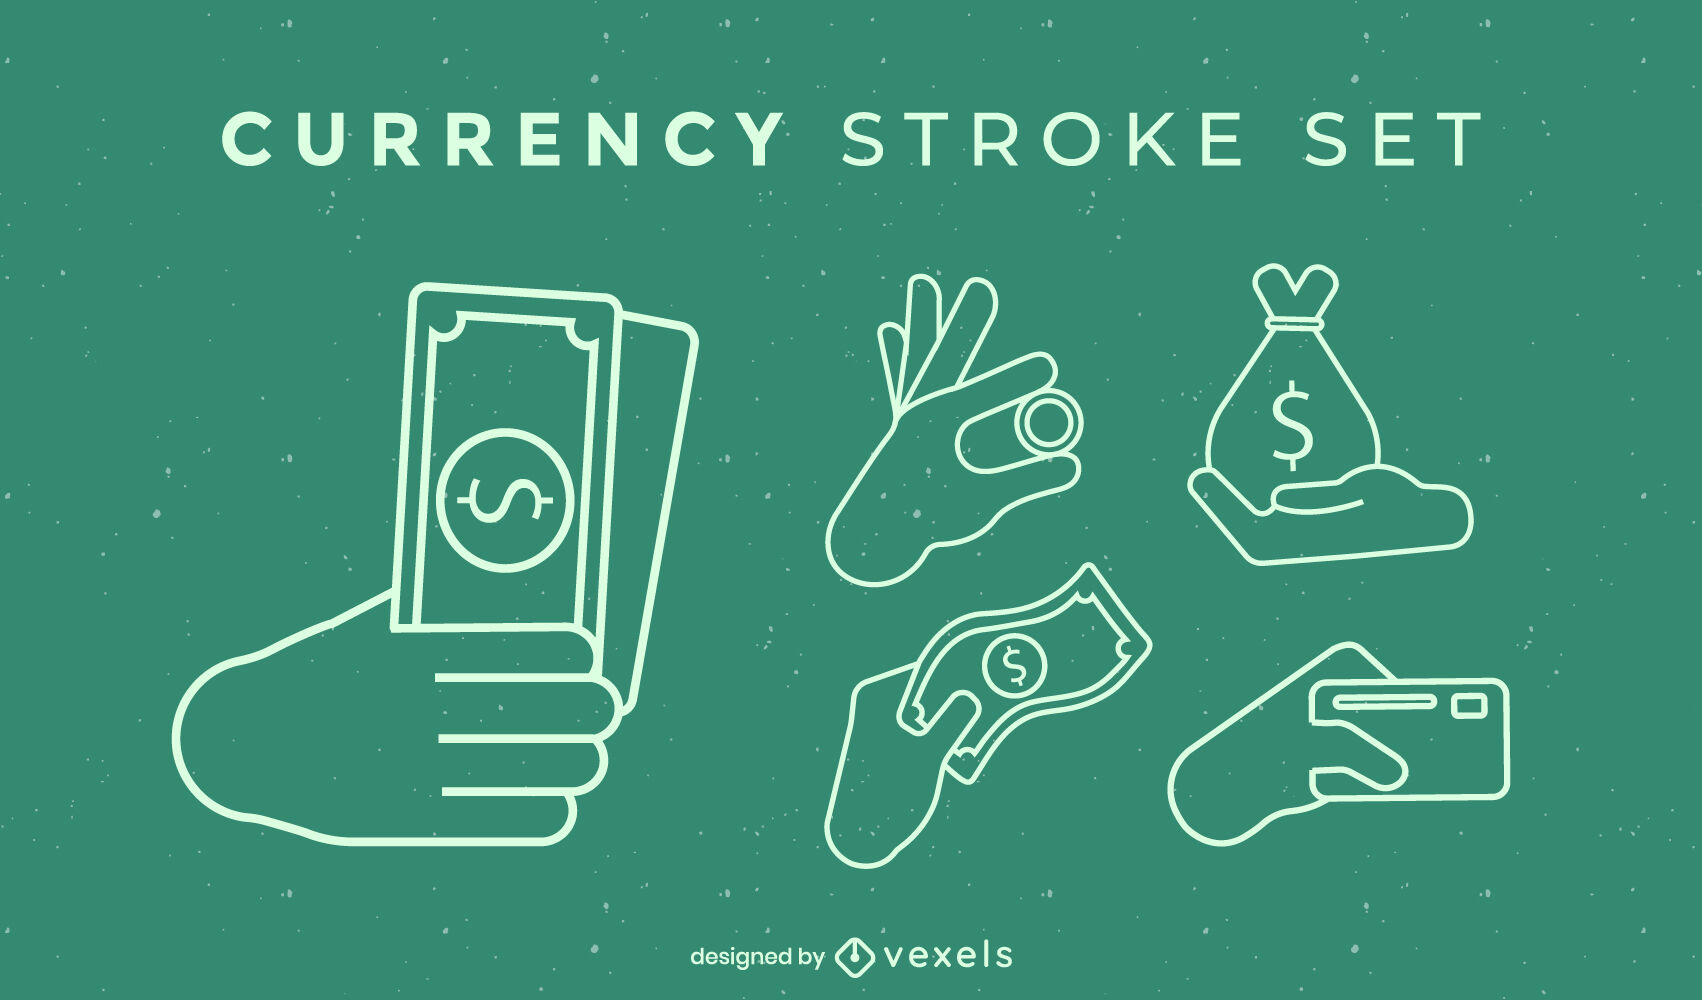 Hands and currency stroke set